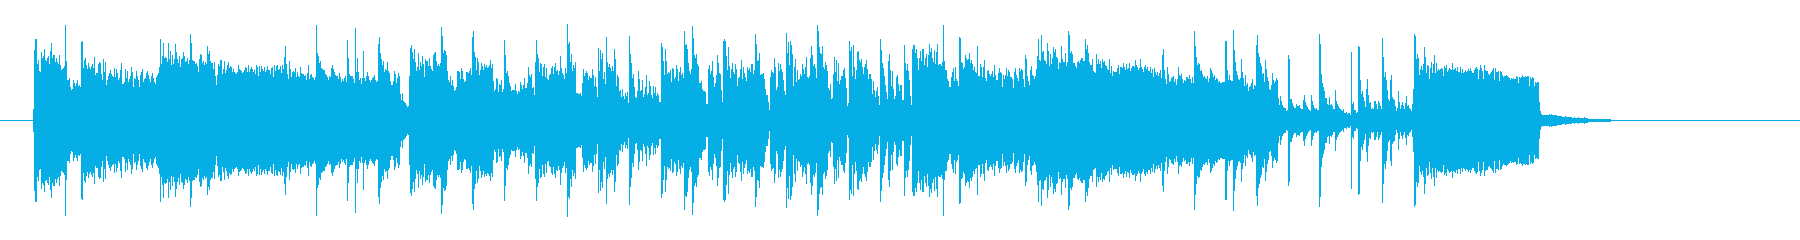 Running jingle, sound logo's reproduced waveform